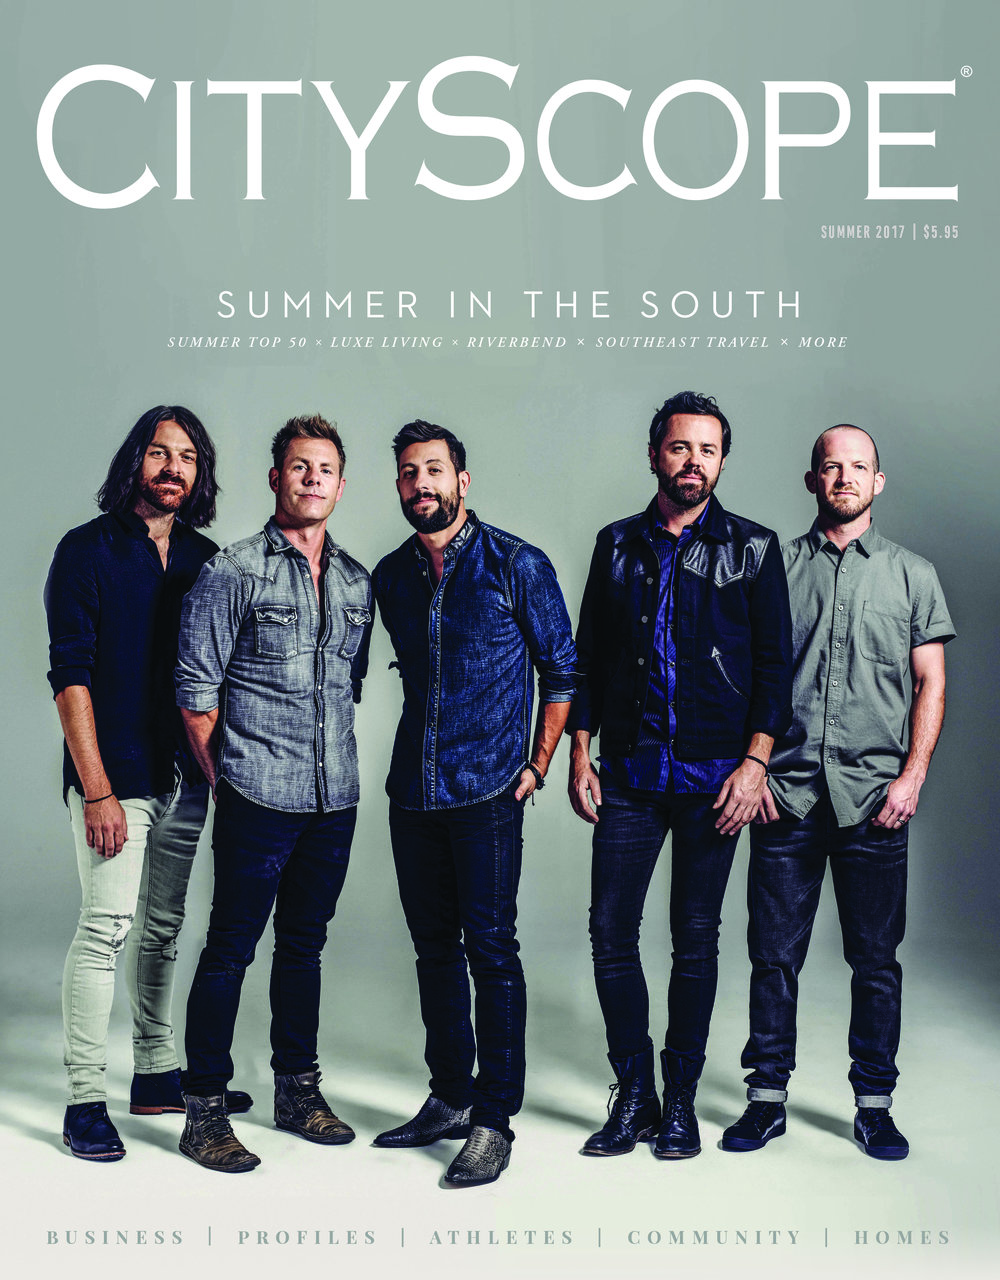 Amplifying the City - The revitalization of Chattanooga's downtown drew a new wave of people interested in everything from trendy restaurants to outdoor attractions. Now, city and community leaders are making a concerted effort to promote music and entertainment as the next crucial component of Chattanooga's draw.Once overlooked when compared to such music cities as Memphis – the birthplace of rock n' roll – and Nashville – the country music capital – Chattanooga is finally getting its due as a musical force of its own. This burgeoning reputation is closely linked to a major push by local officials to increase tourism in Chattanooga by creating entertainment hotspots that appeal to the various tastes of residents and tourists alike.